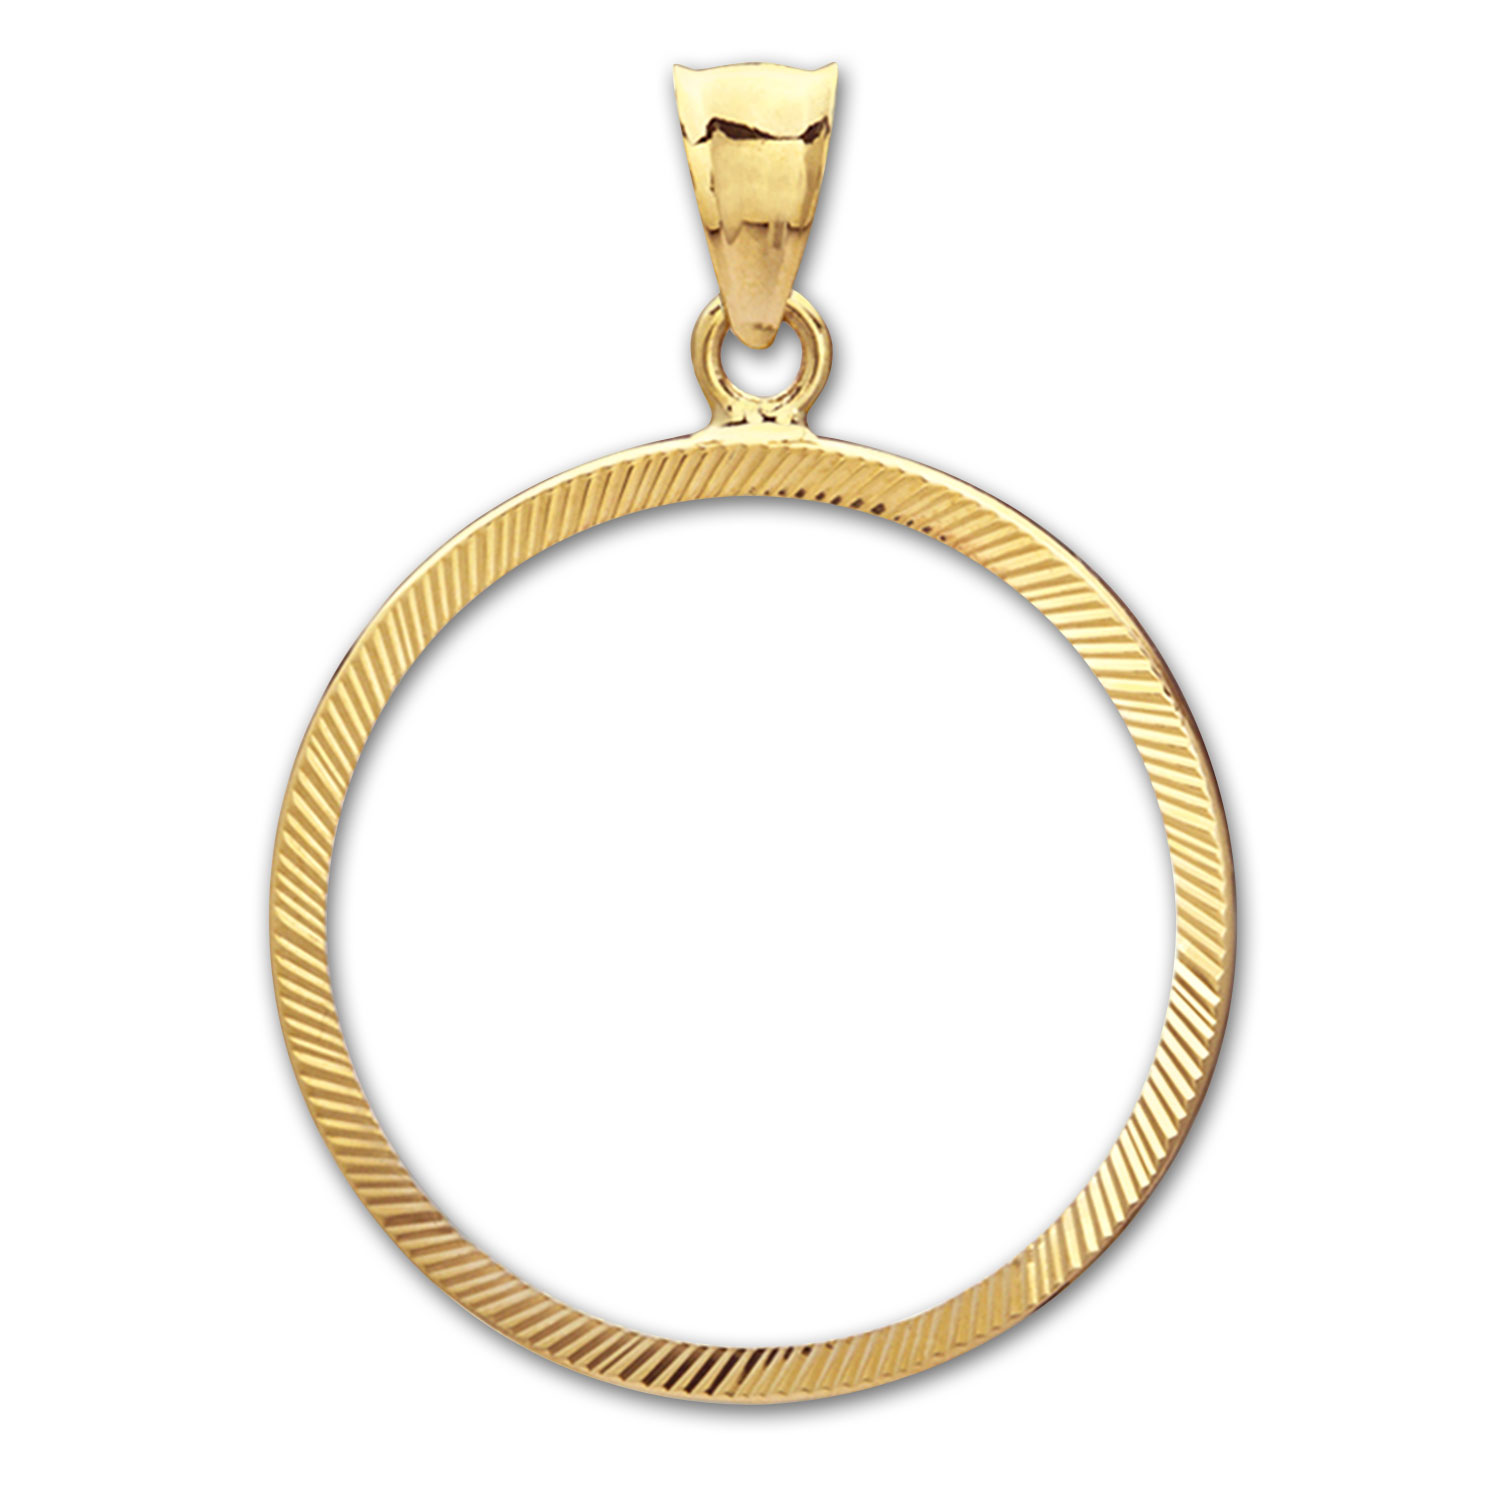 14K Gold Prong Diamond-Cut Coin Bezel - 18 mm